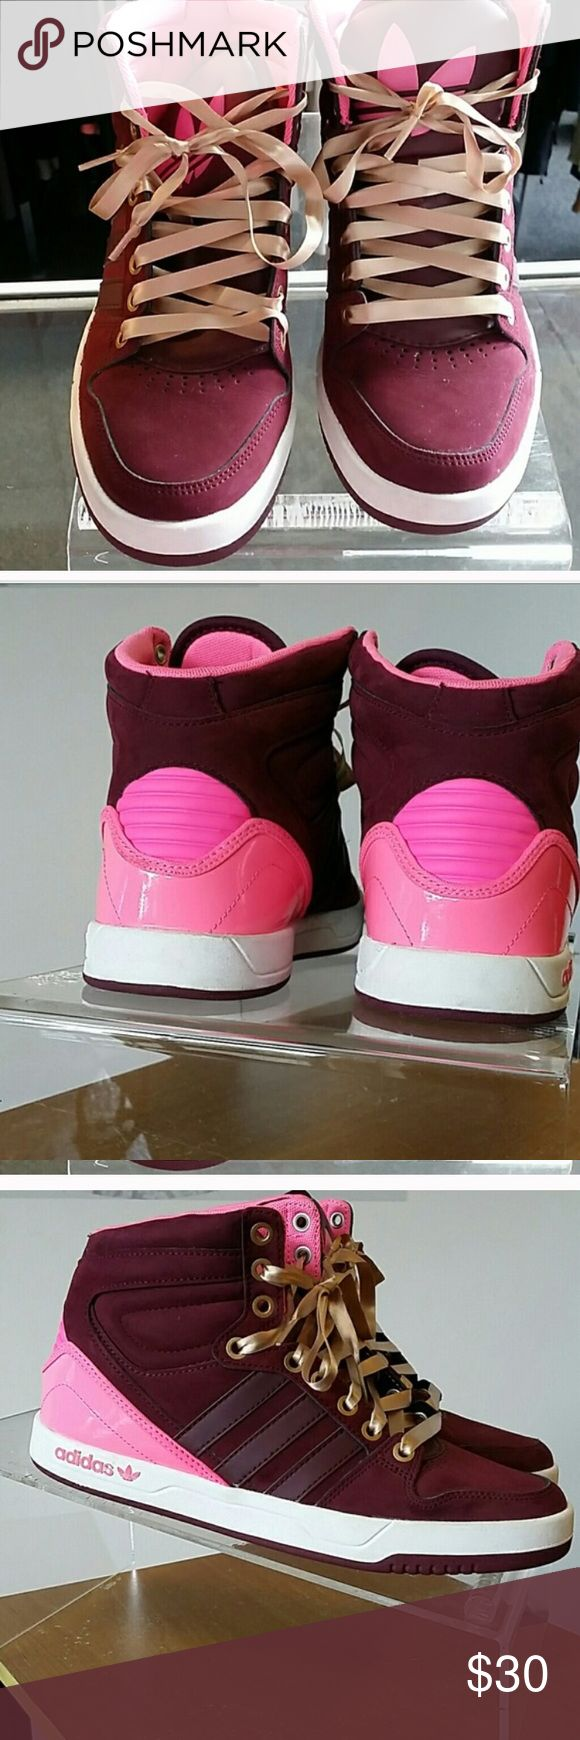 Adidas pink shoes Super cute pink adidas tennis shoes Shoes Athletic Shoes